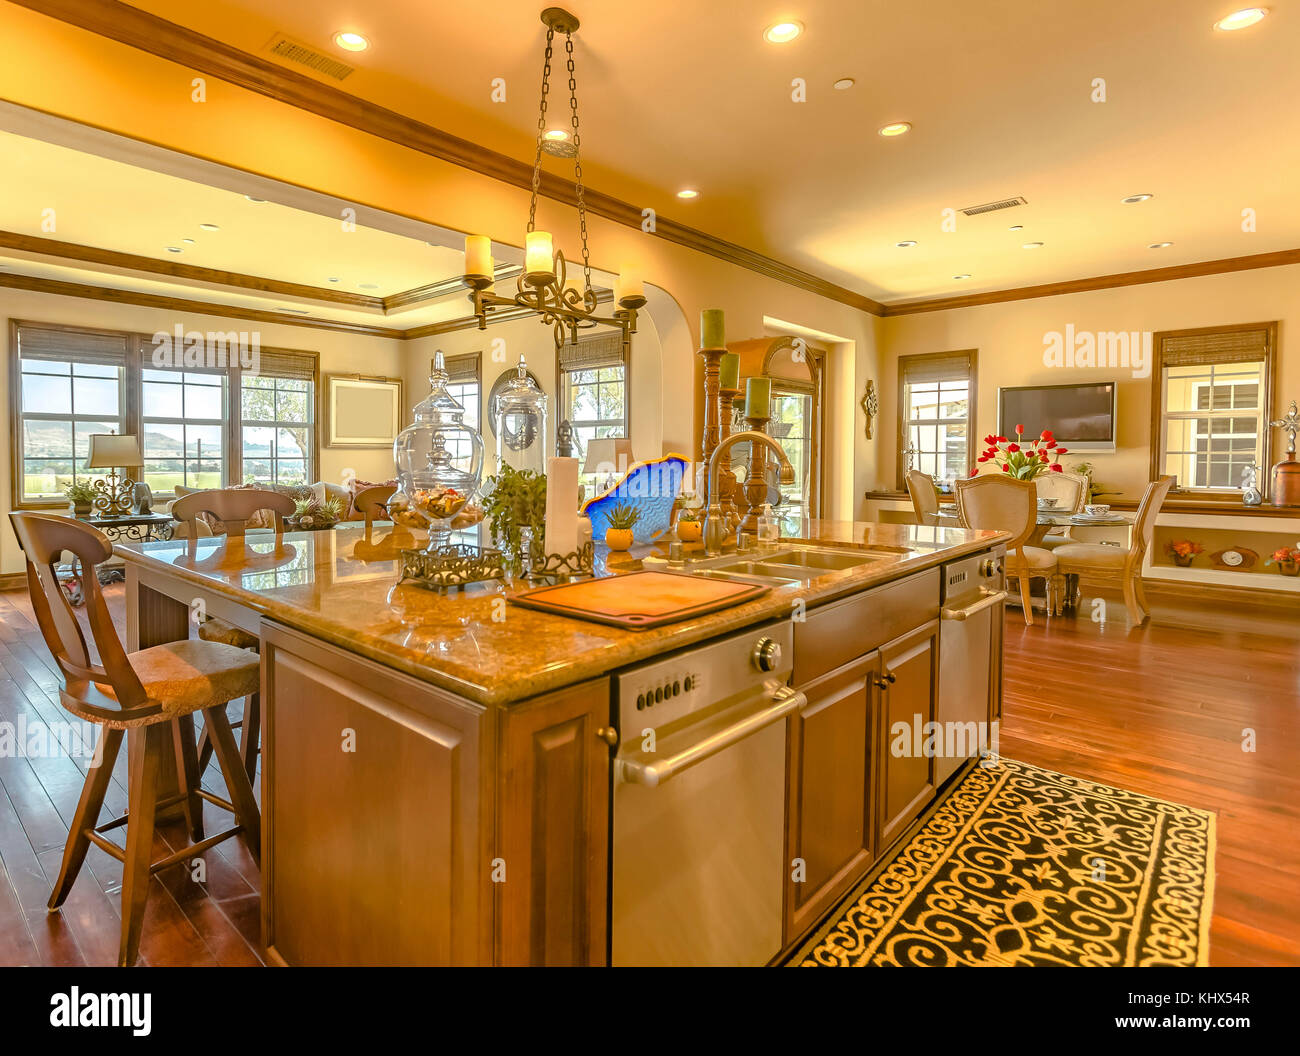 Counter Tops Stockfotos & Counter Tops Bilder - Alamy